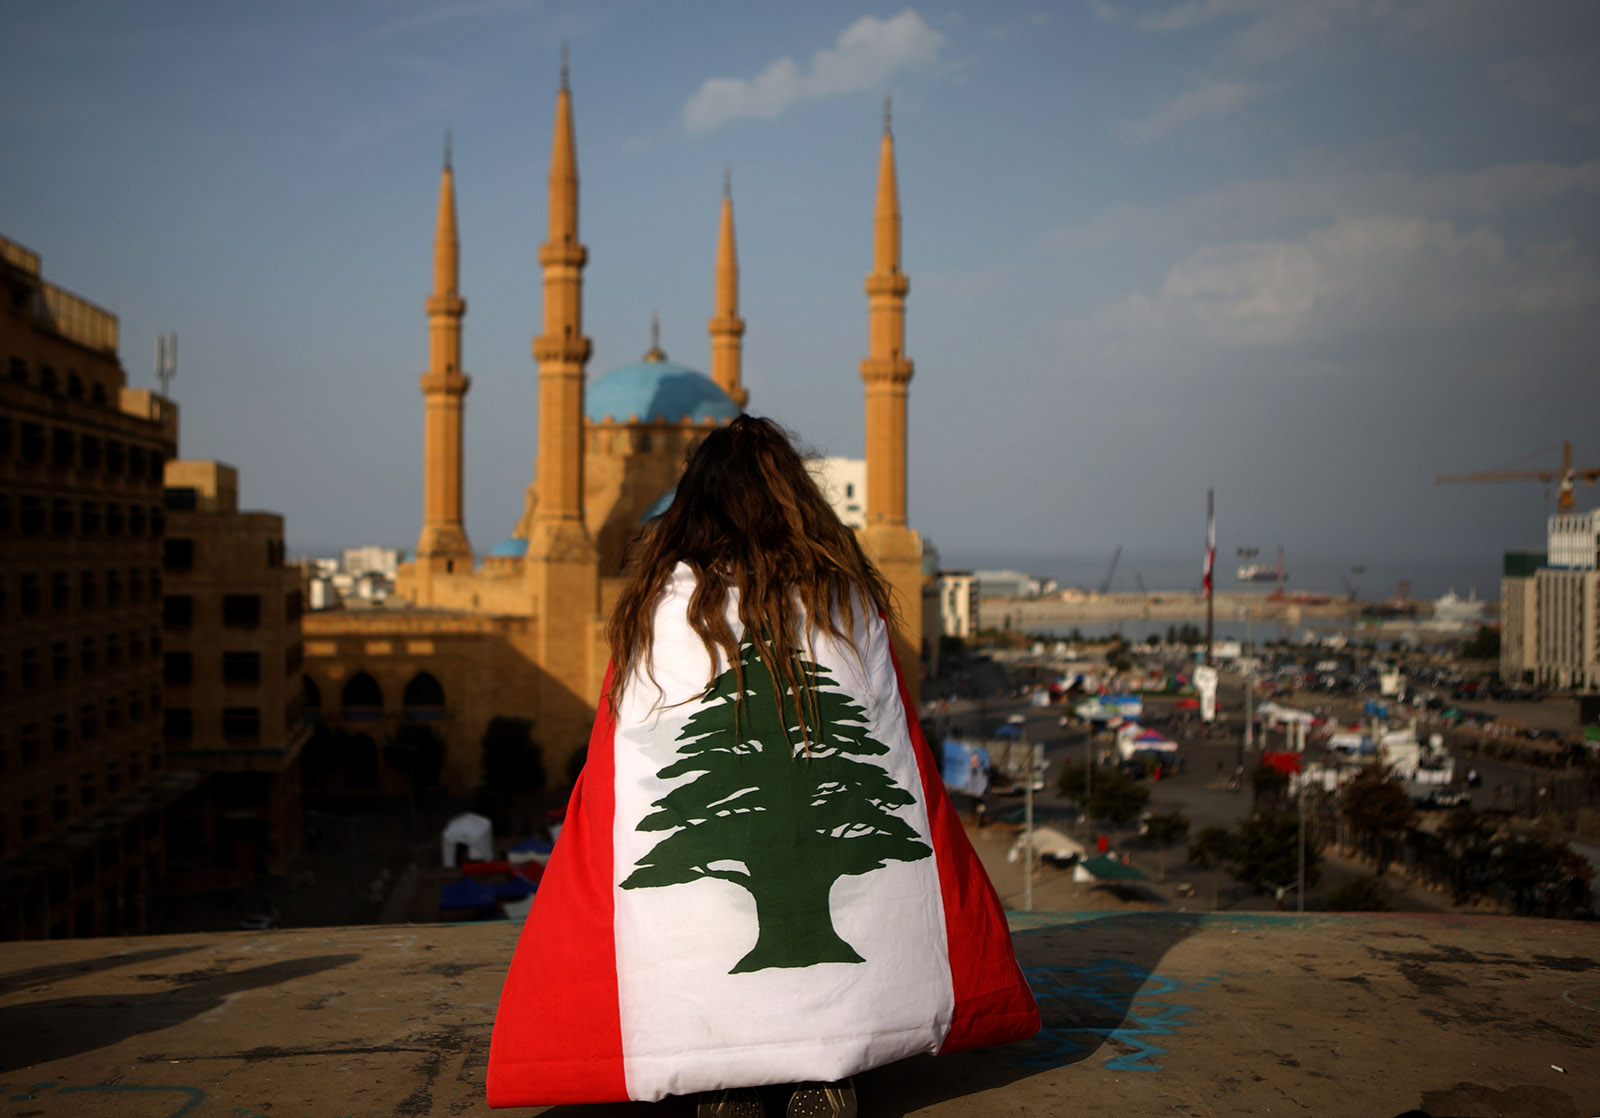 A Lebanese anti-government protester, draped in a national flag, sitting atop The Egg building overlooking the Mohammed al-Amin mosque and the Martyrs' Square, Beirut, Lebanon, November 14, 2019